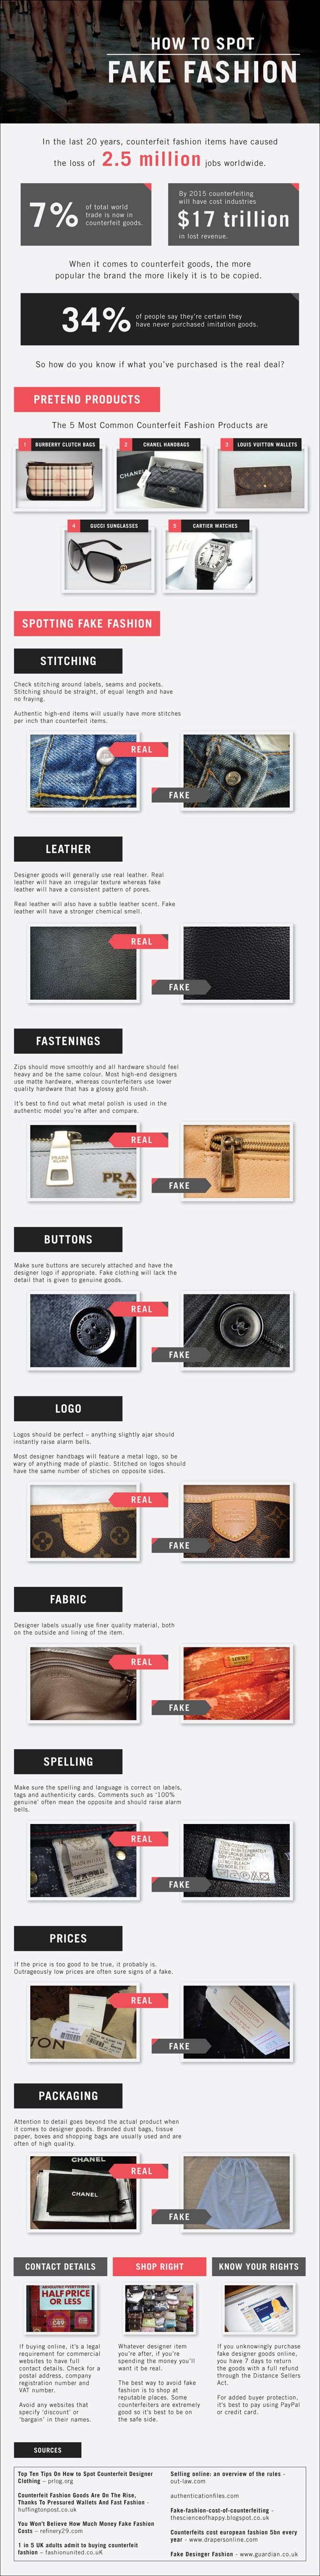 How to Tell Fake Goods-Infographic